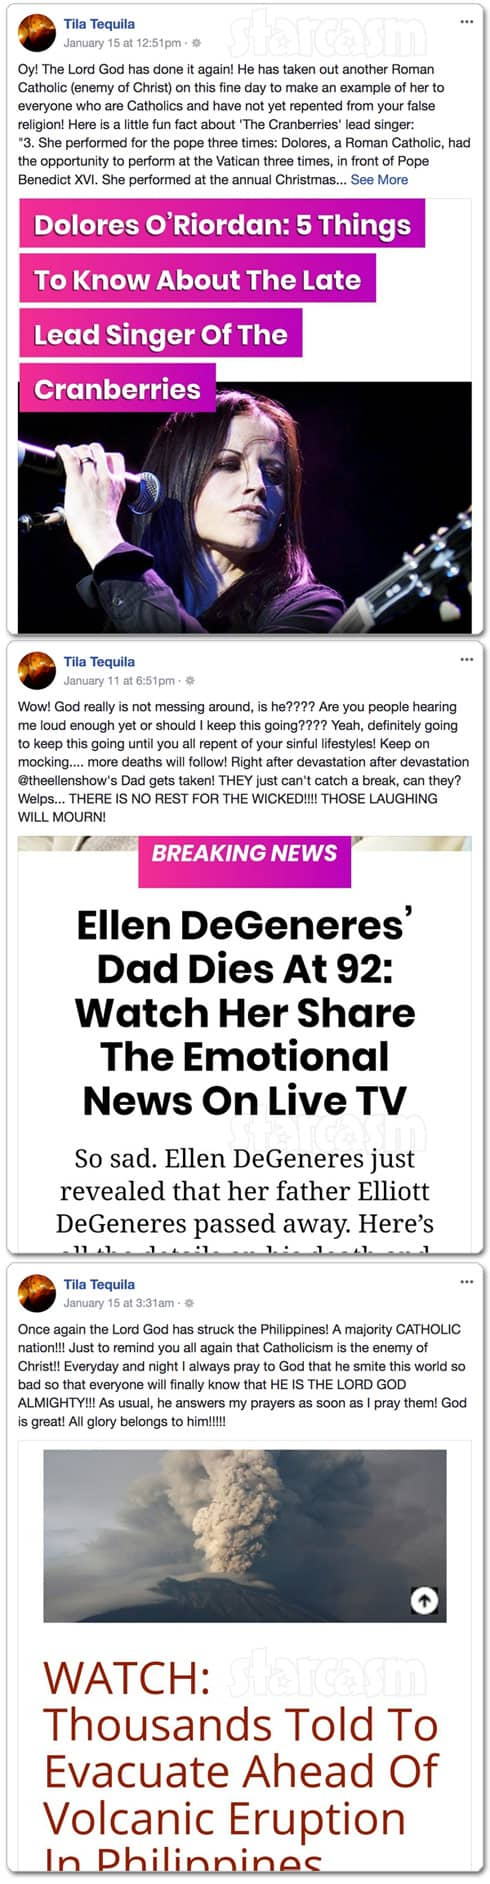 Tila Tequila Facebook posts about Dolores O'Riordan, Ellen Degeneres and Philippines volcano eruption